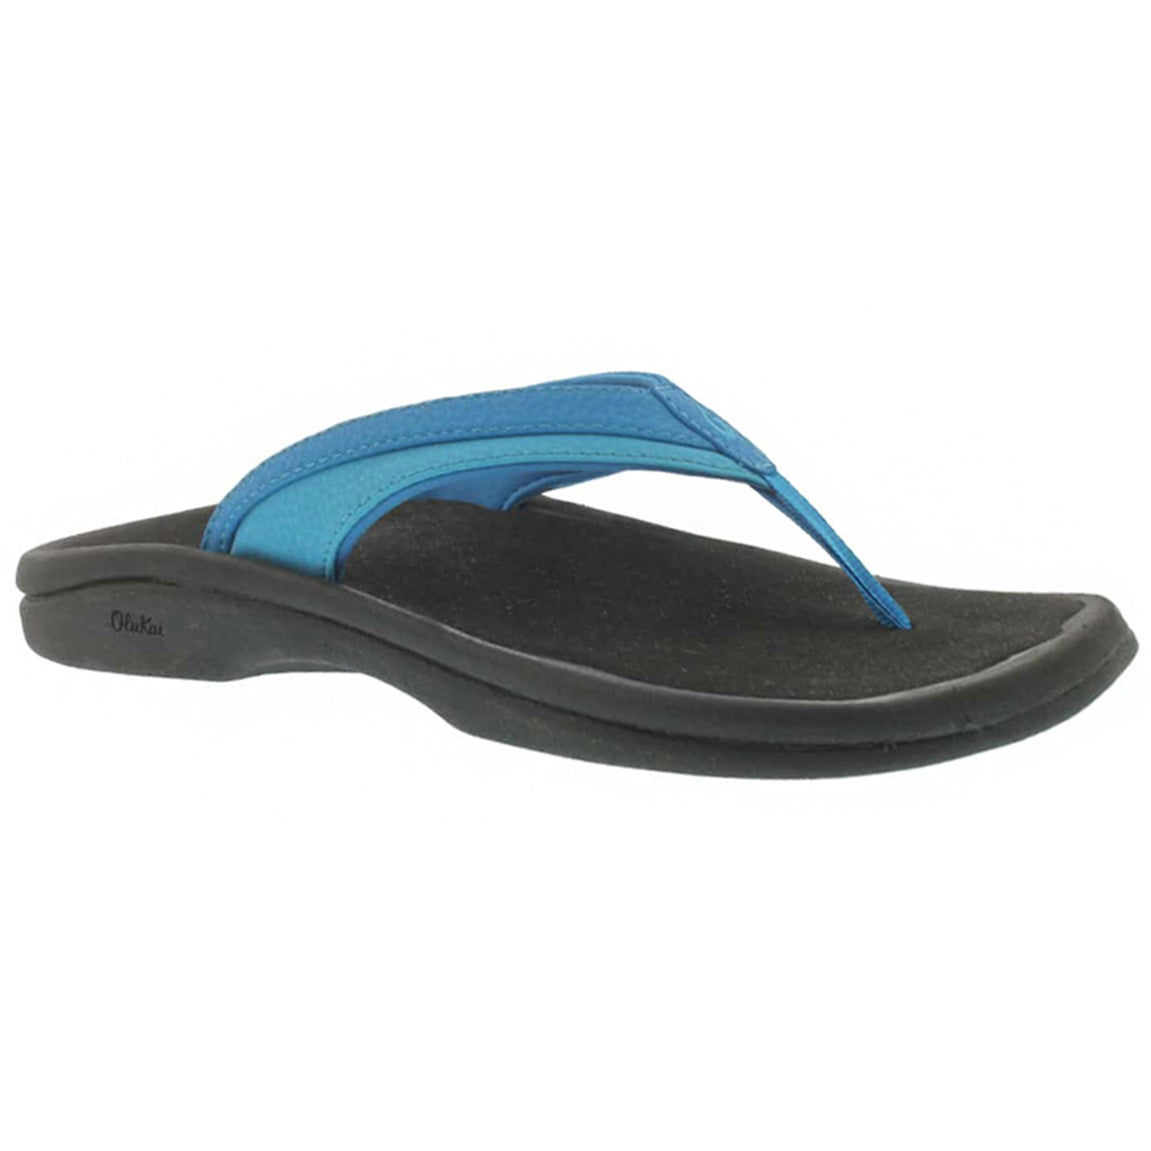 Sandales tongs OHANA, bleu tropical, femmes